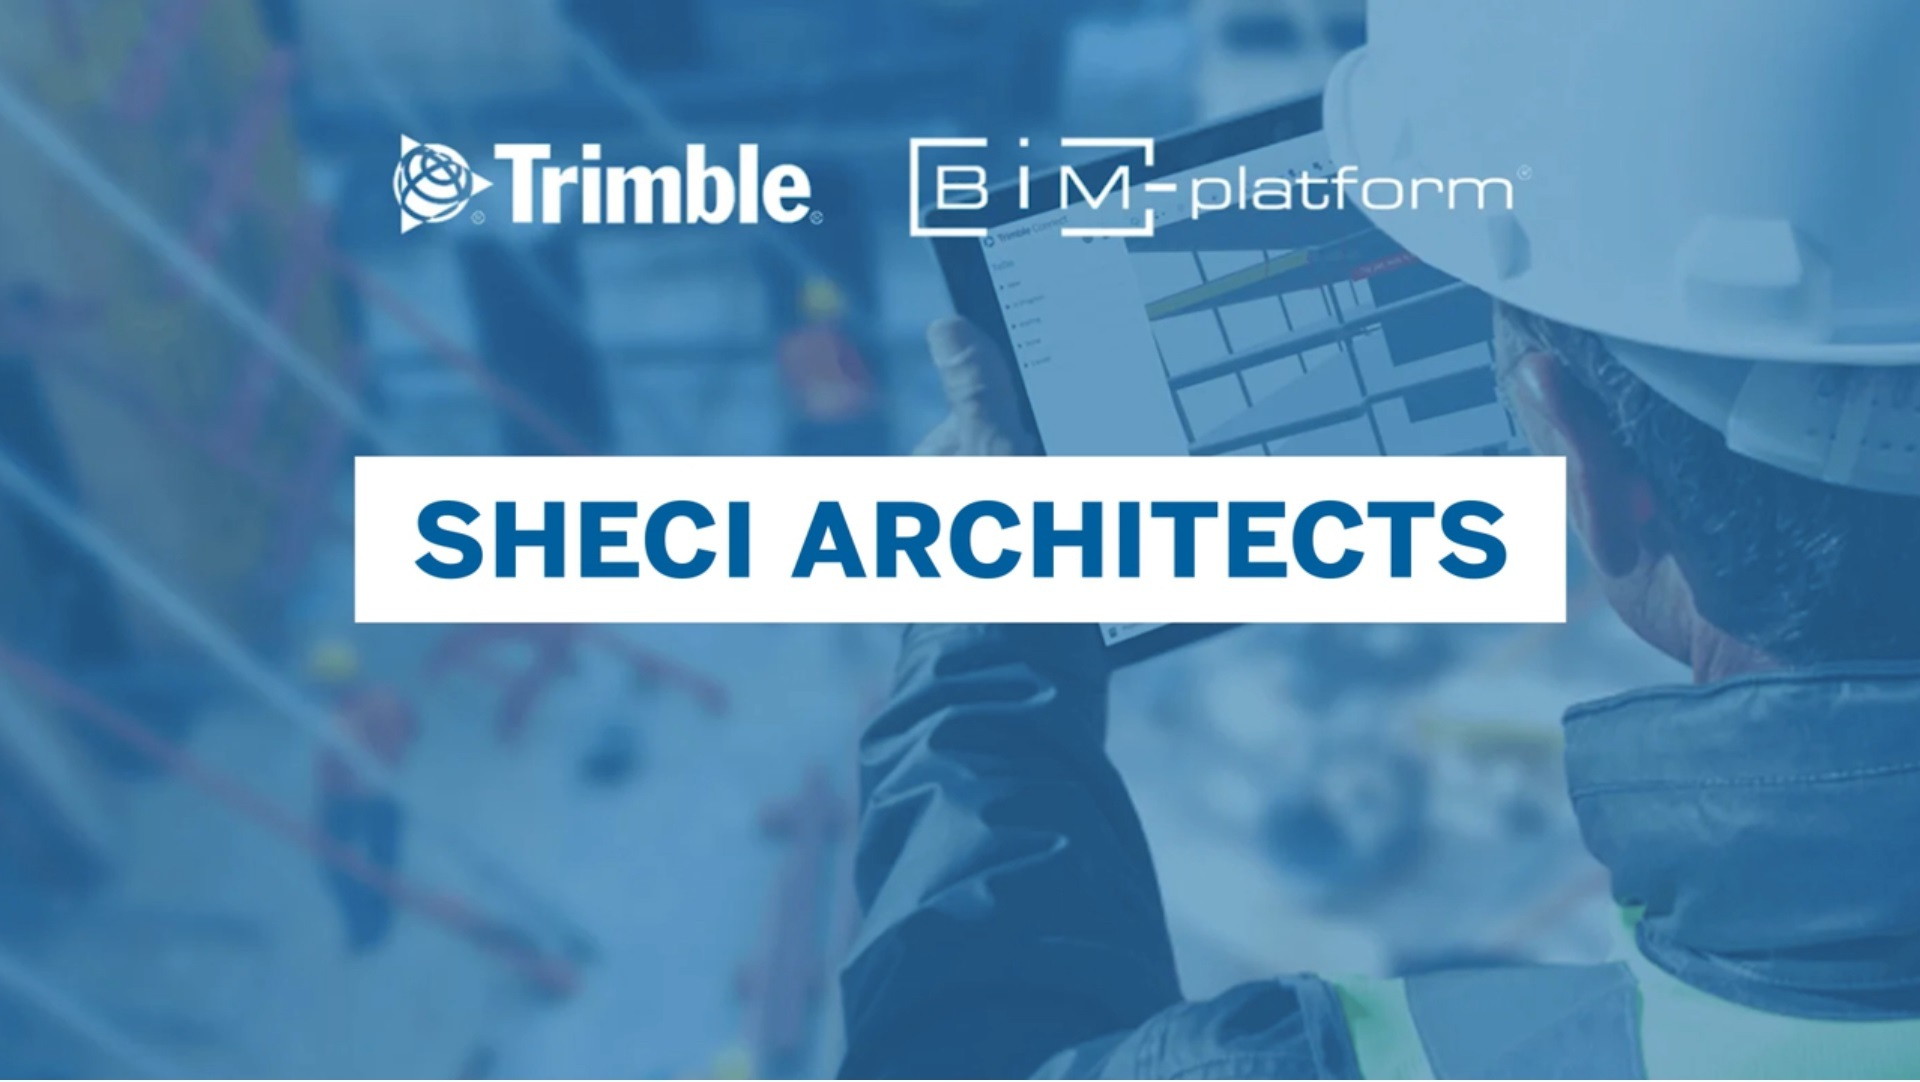 [BIM-Platform & Trimble] SheCi Architects